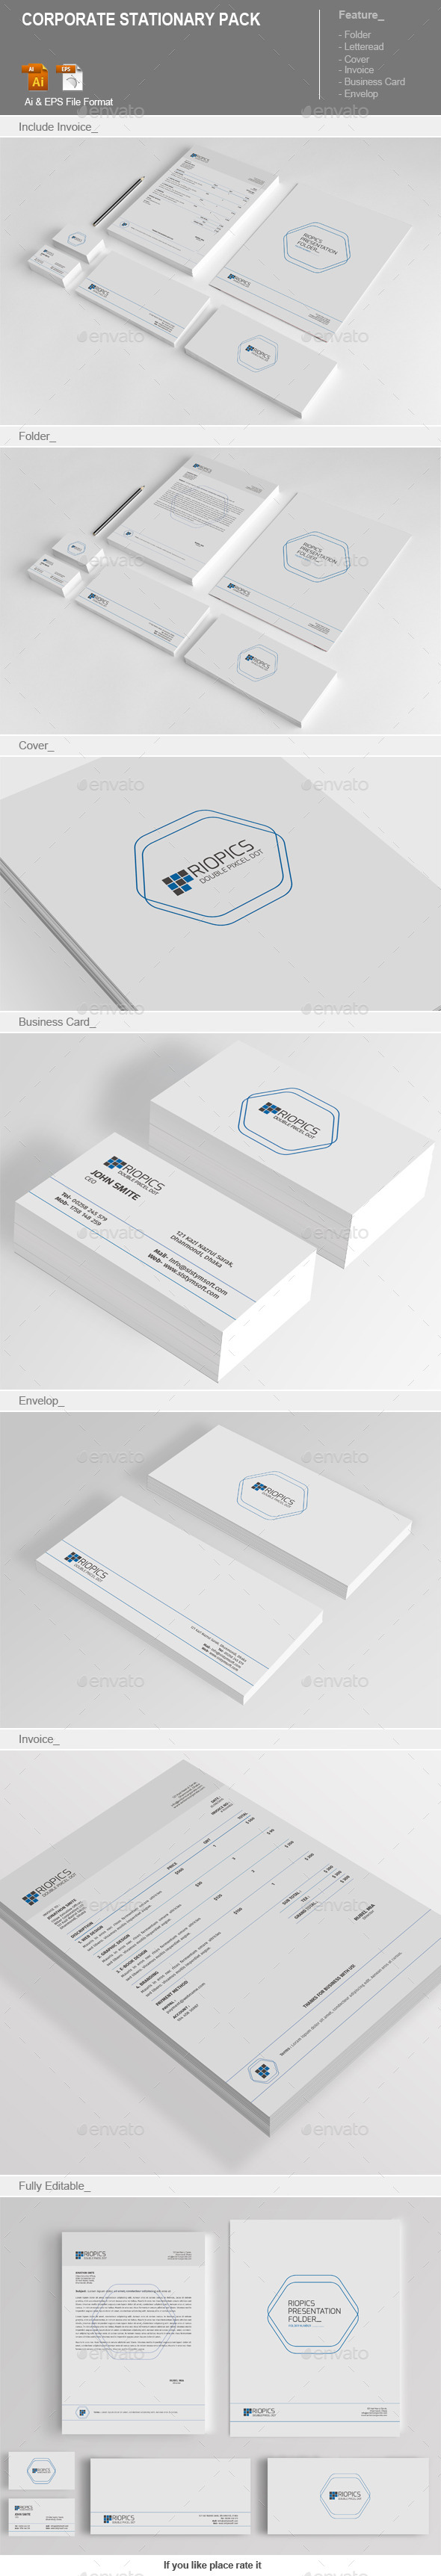 GraphicRiver Corporate Stationary Pack 11867310